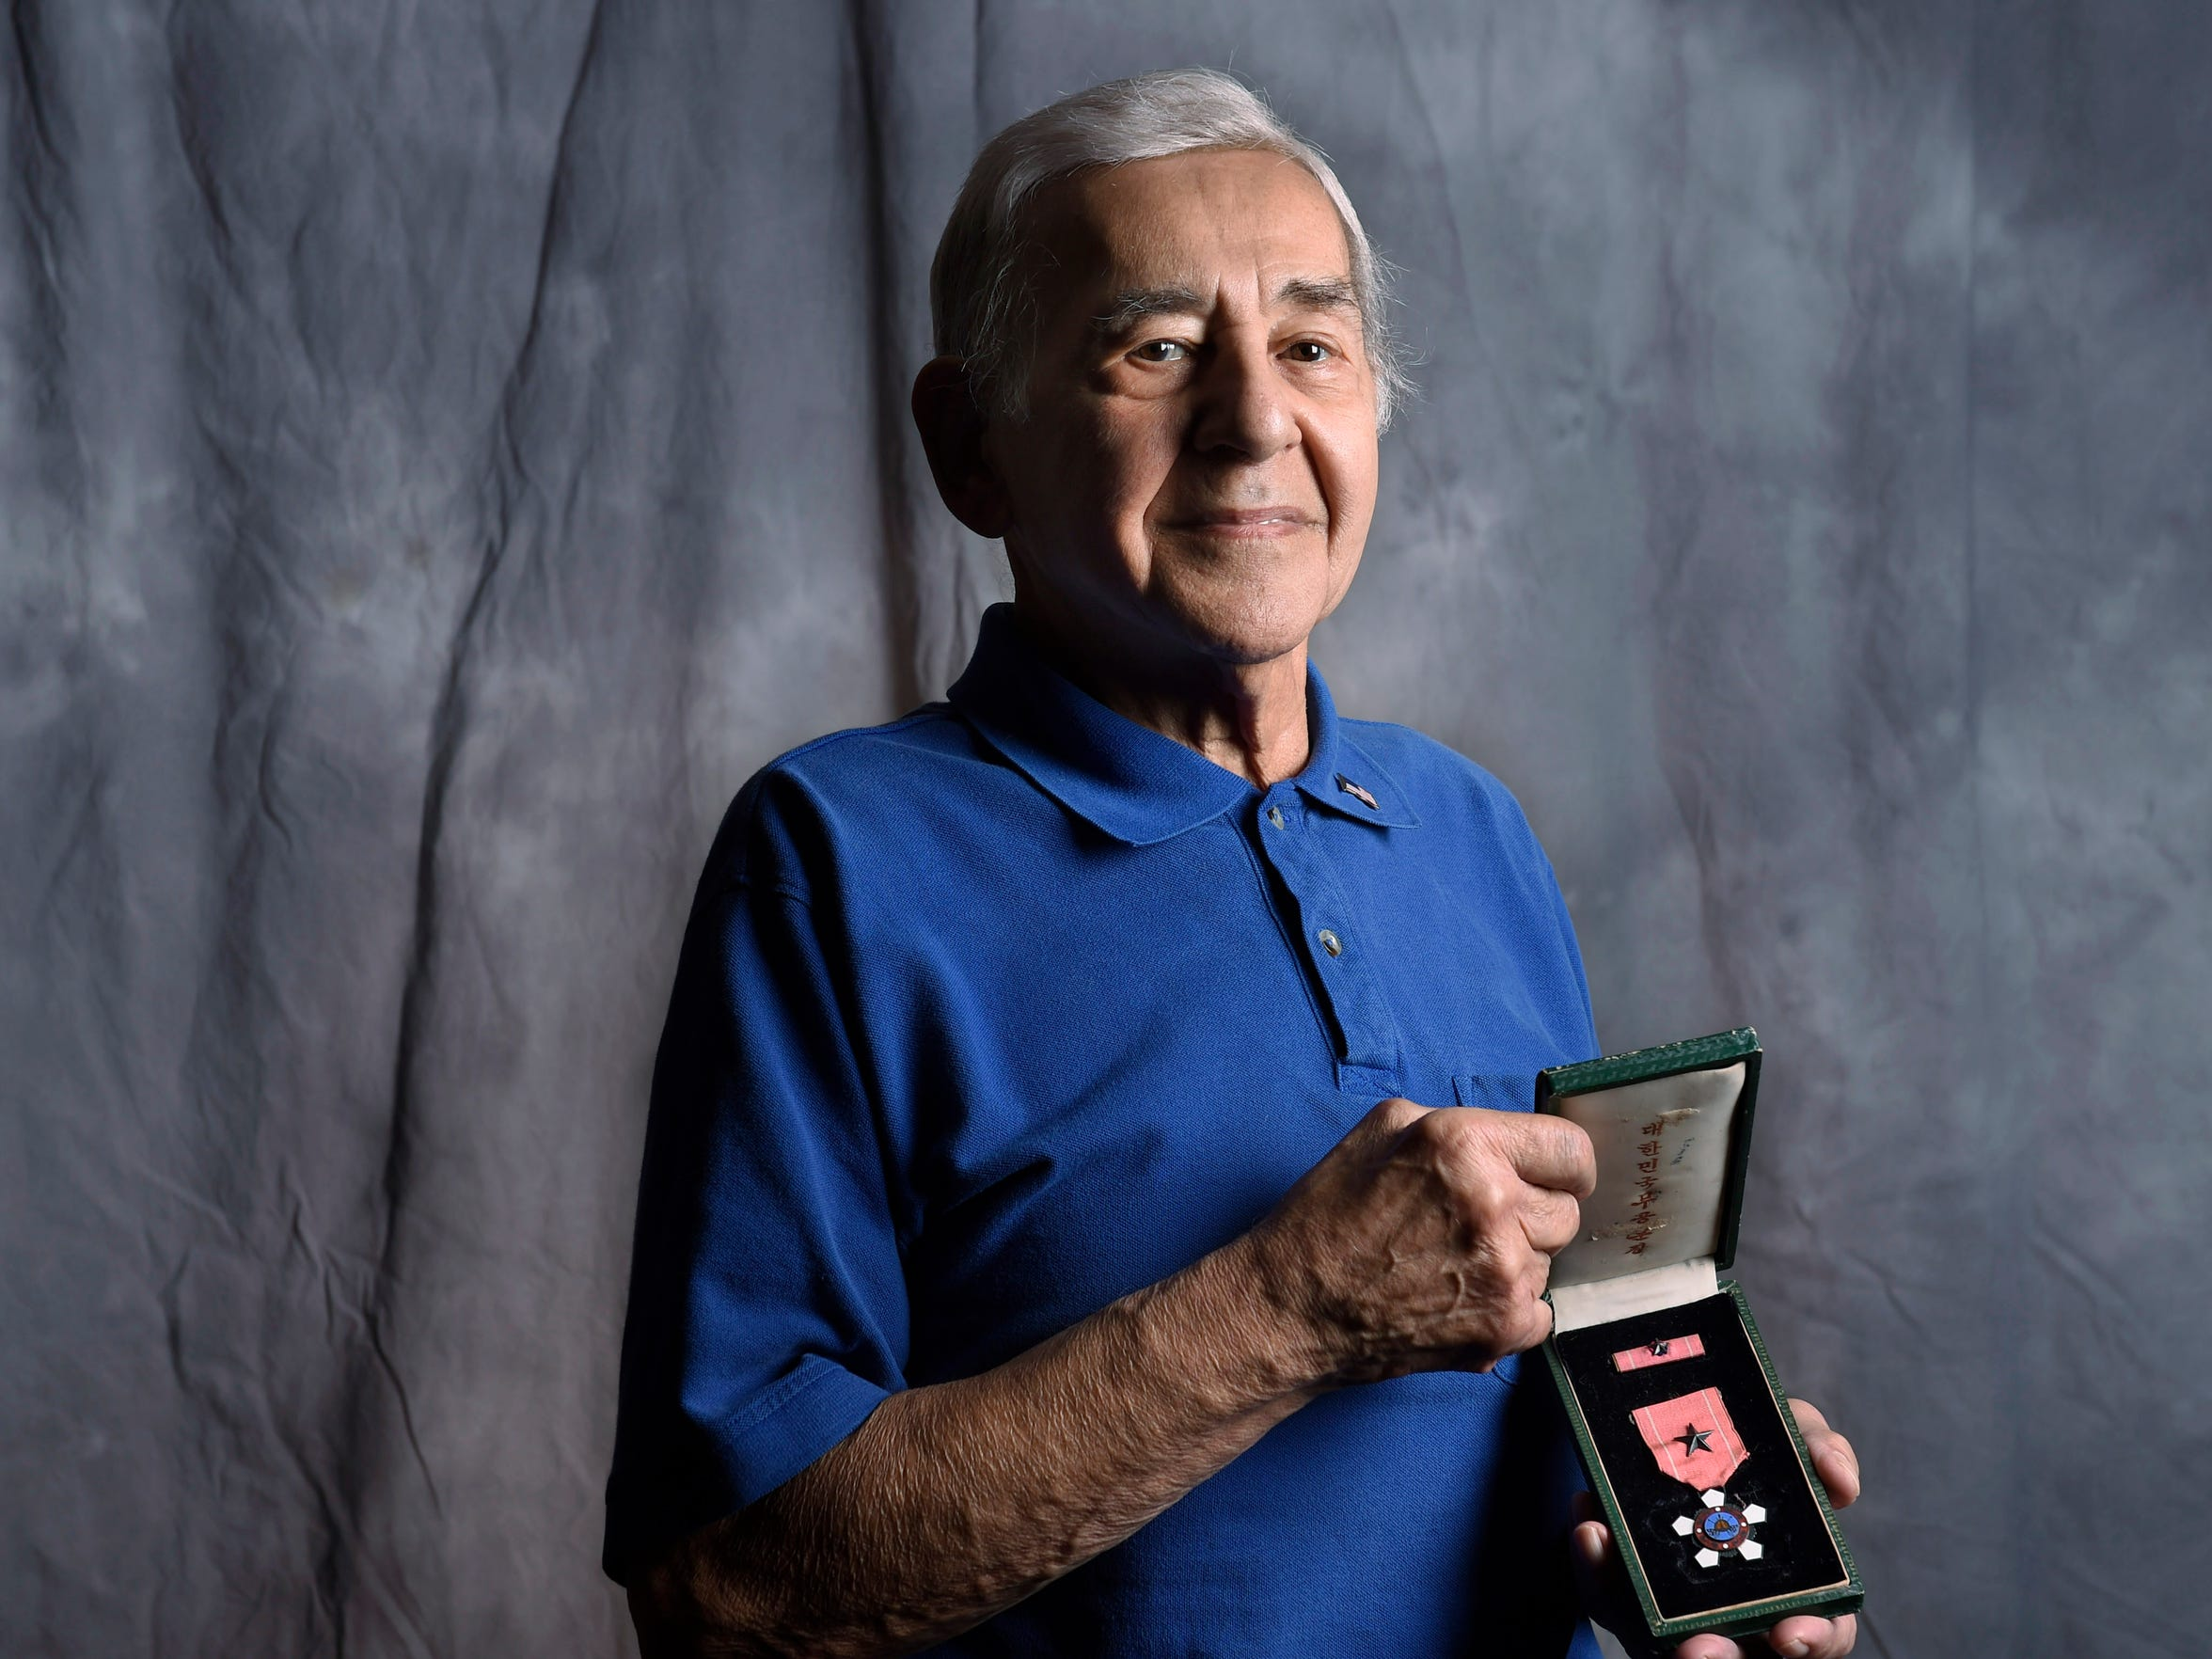 Ray Kalil served in the Army during the Korean War. His platoon supported the South Korean military, and they were stationed on a hill that almost got overrun by the Chinese military. He has a South Korean Silver Star for his efforts.